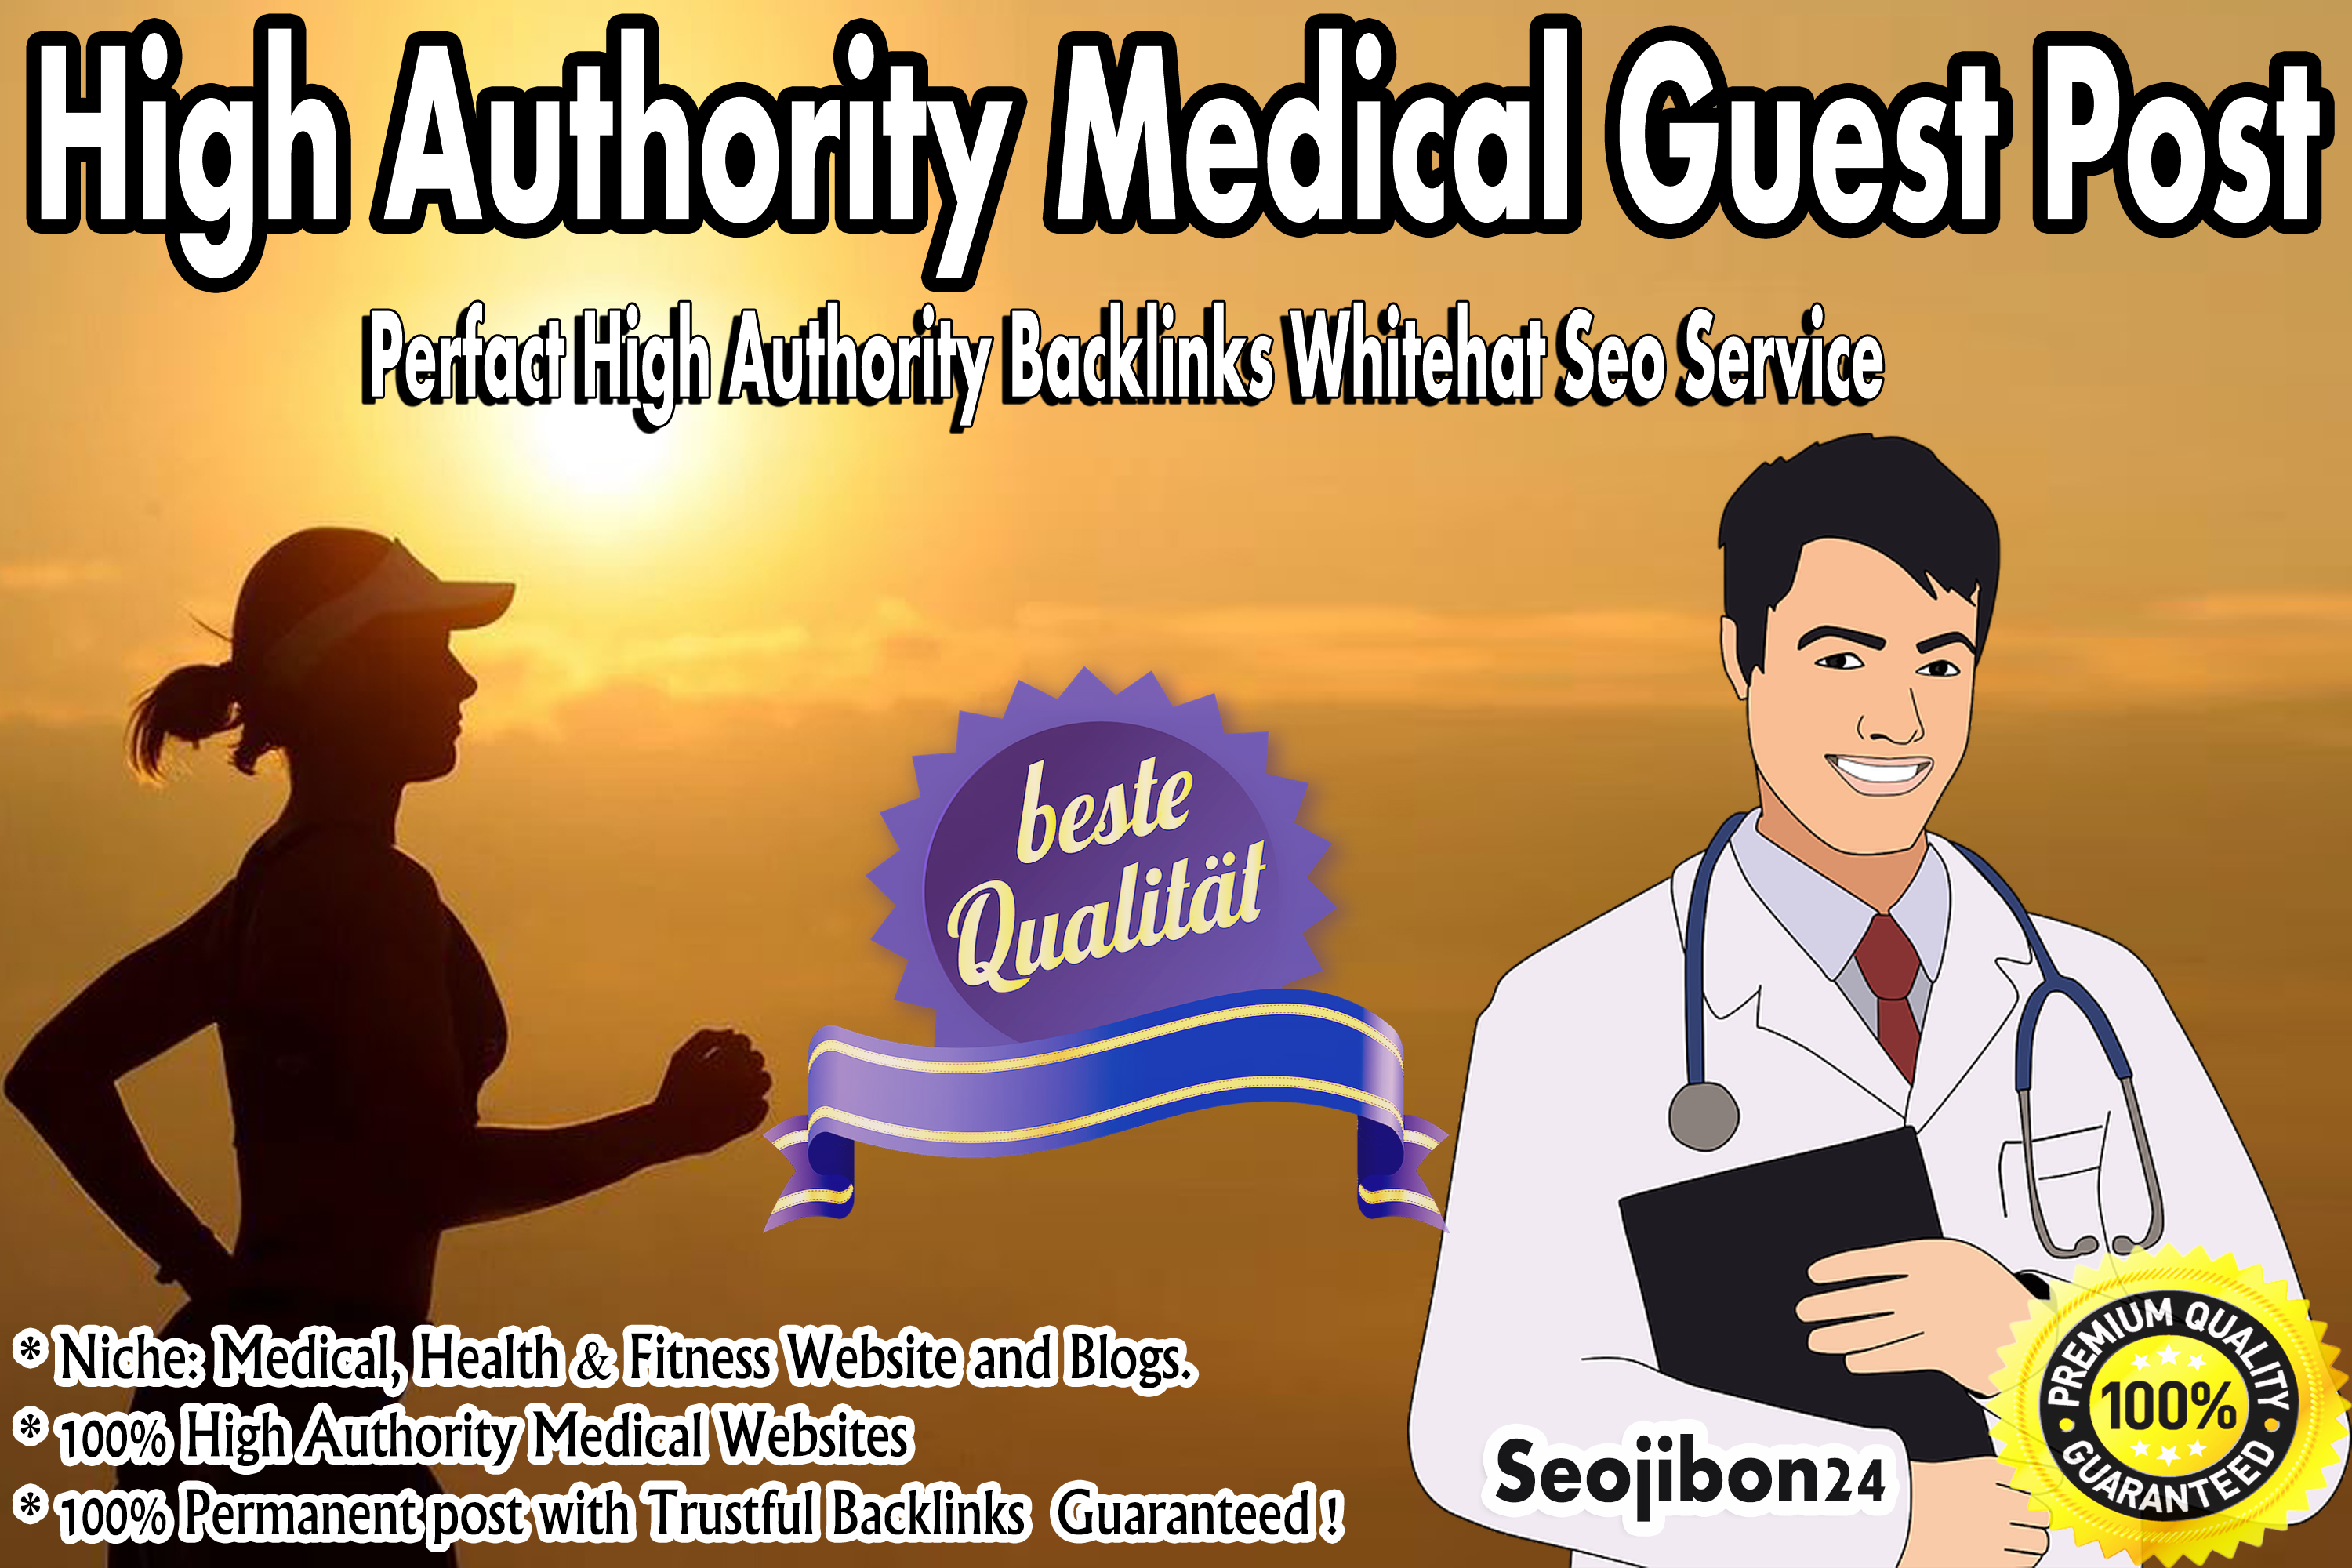 I will publish medical guest post on high authority sites and blogs